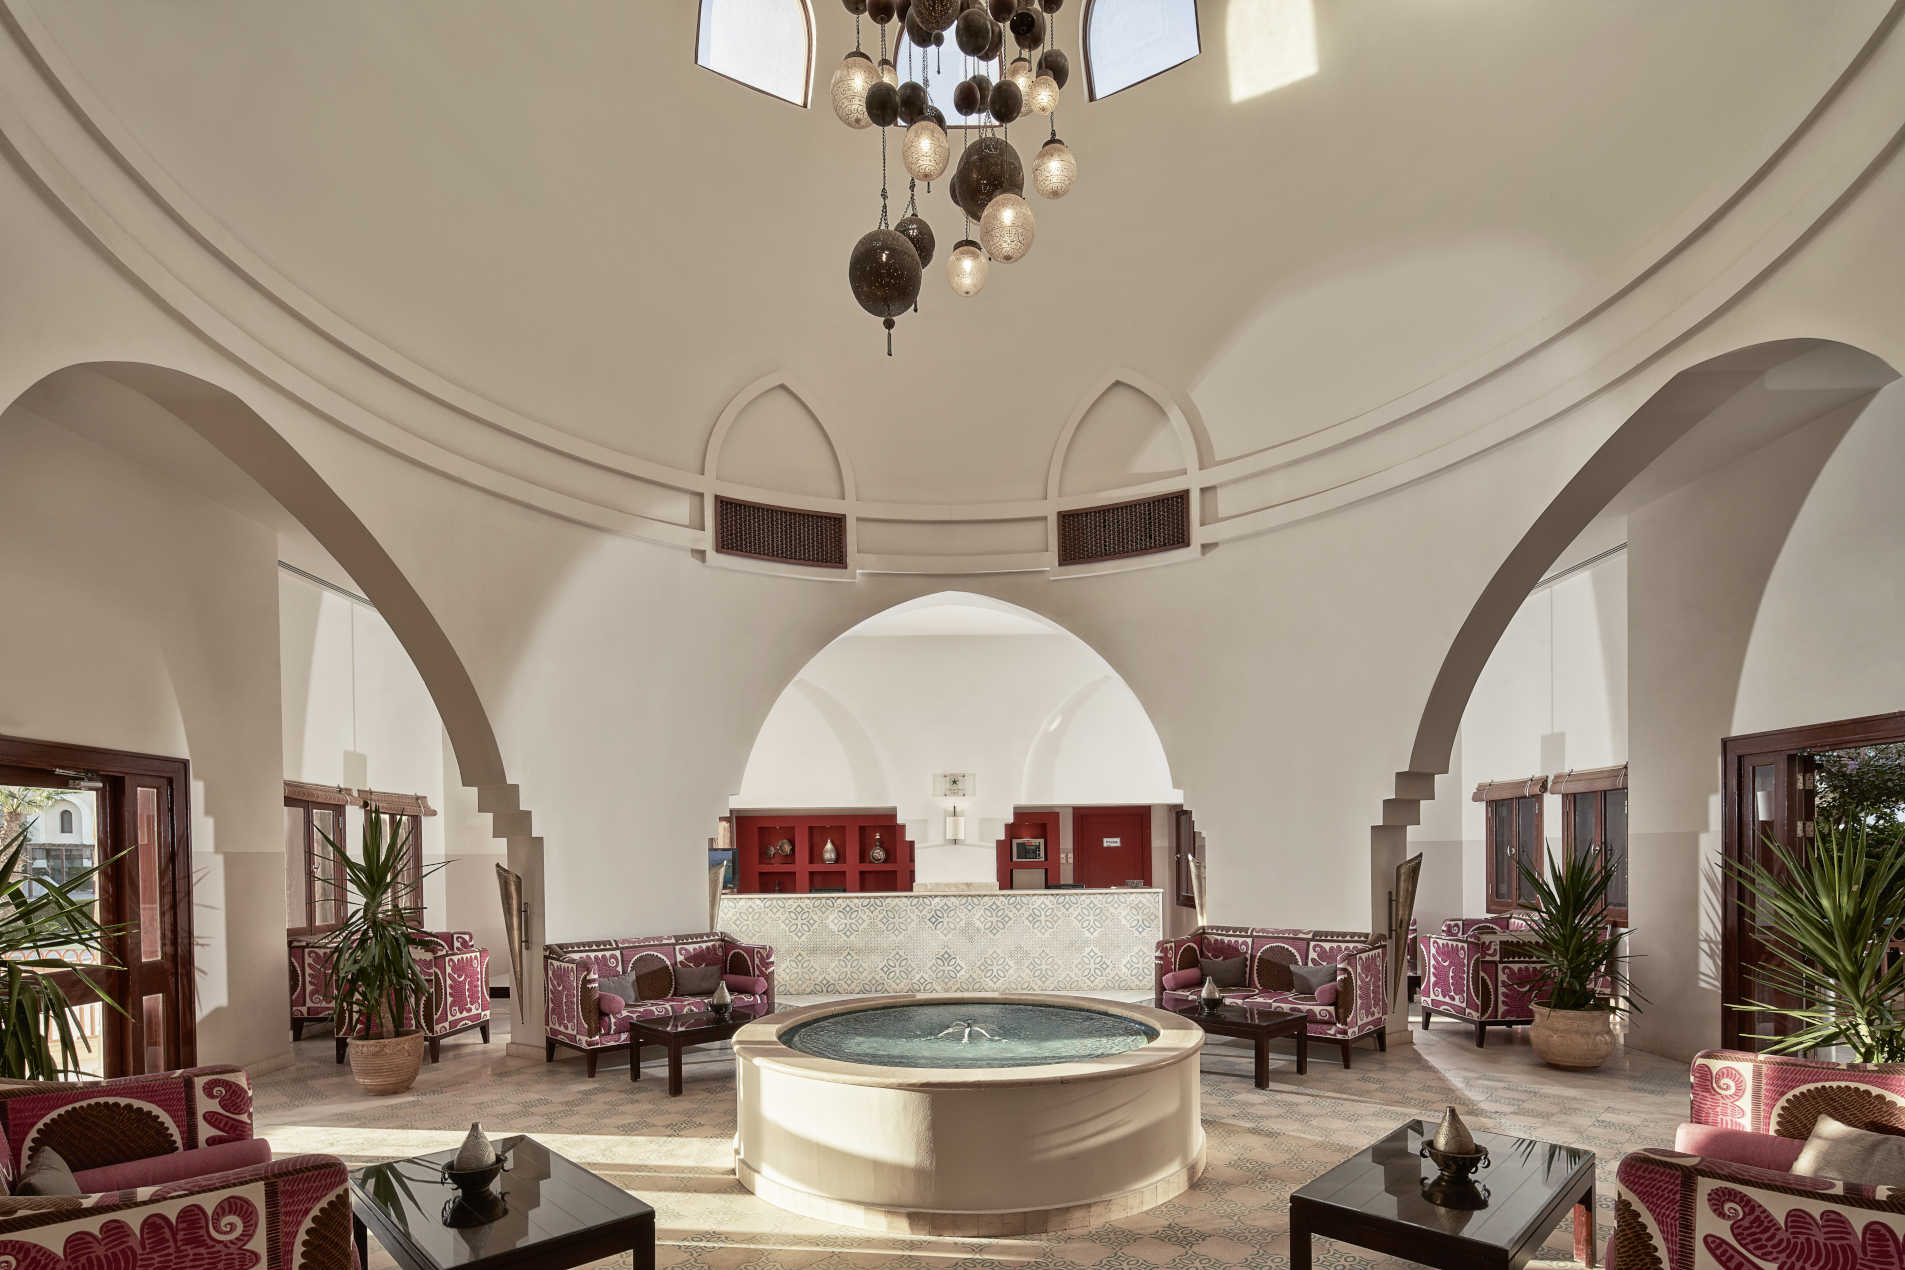 Mosaique Hotel Lobby in Moroccan style mixed with brown pink sofas, high ceiling and centered fountain in El Gouna